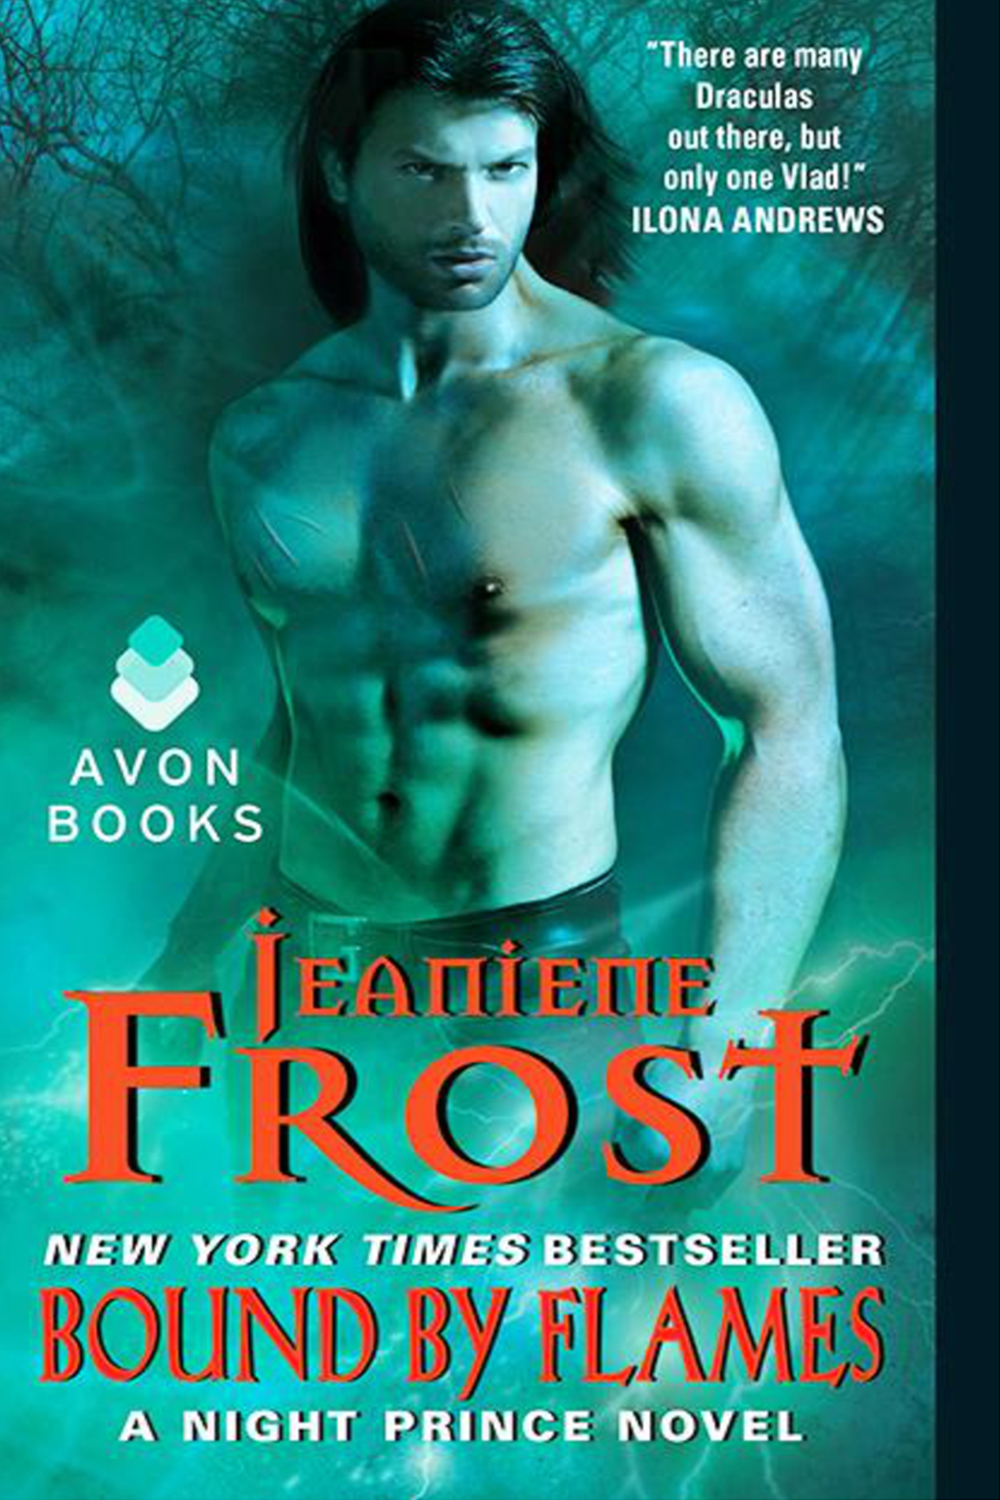 S1 E24 Bound by Flames by Jeaniene Frost